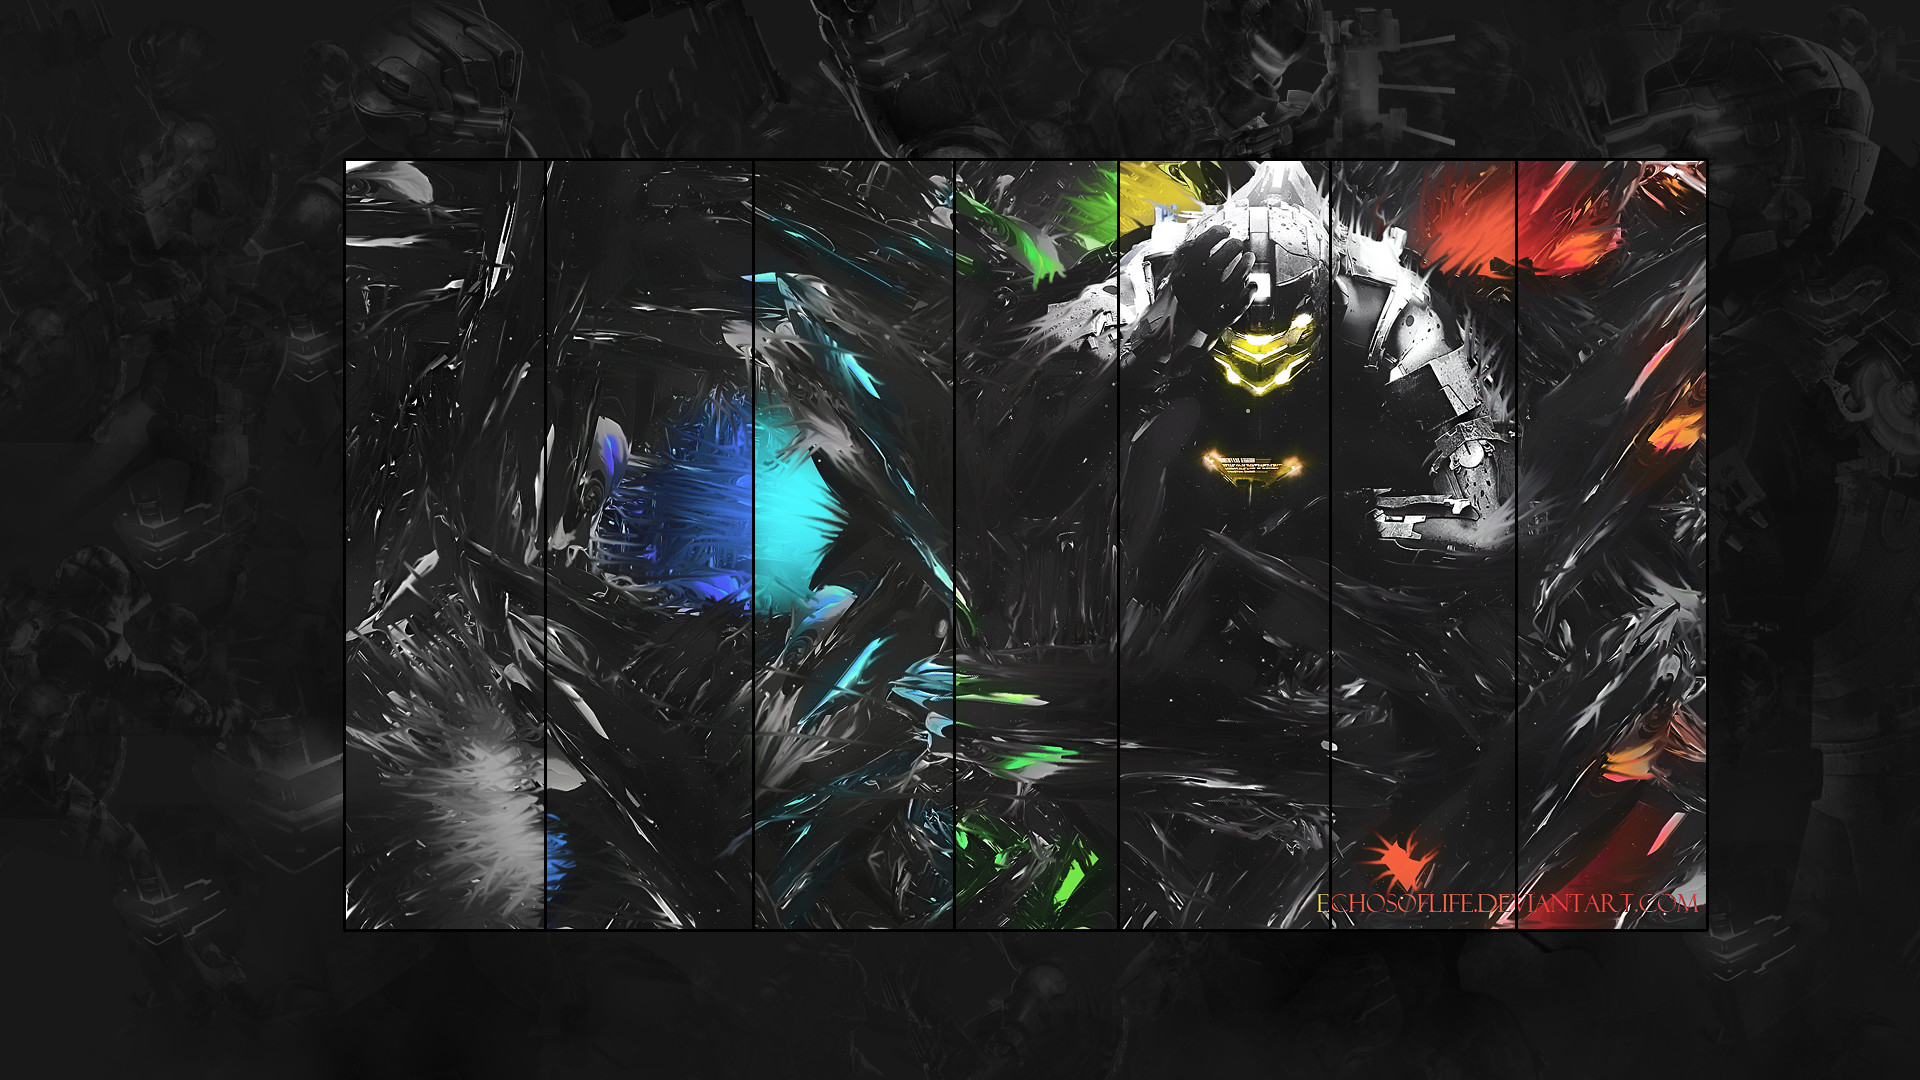 1920x1080 ... Dead Space Wallpaper Pack Smudge by echosoflife